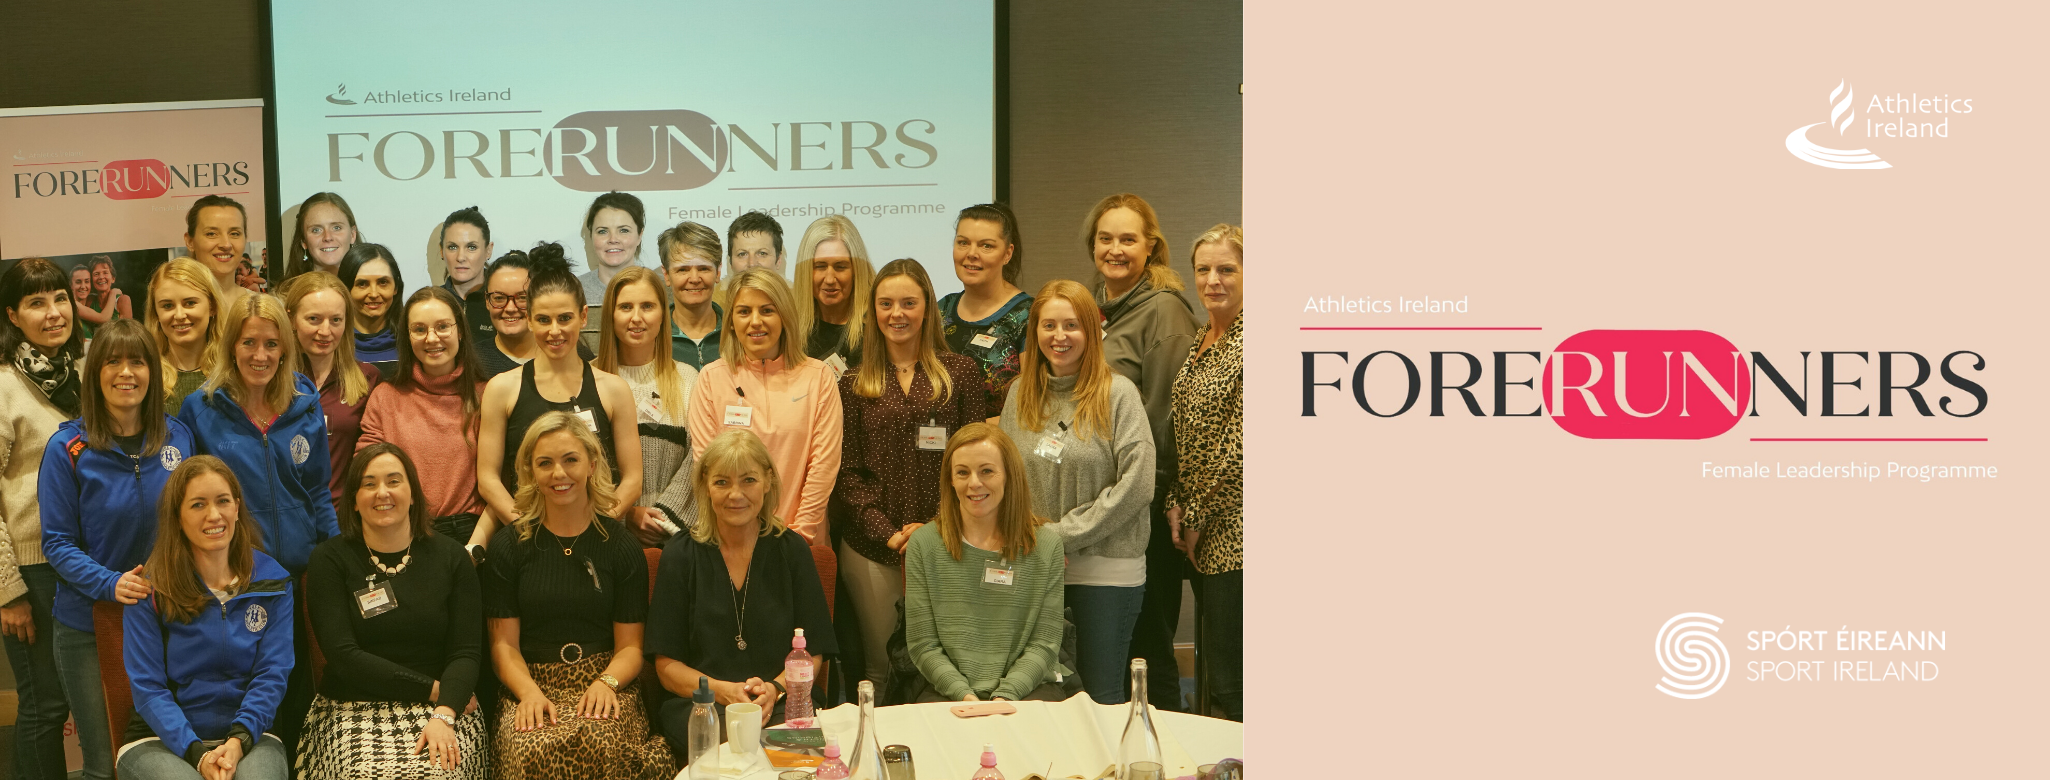 Forerunners – Session 3- Governance with Brid Golden